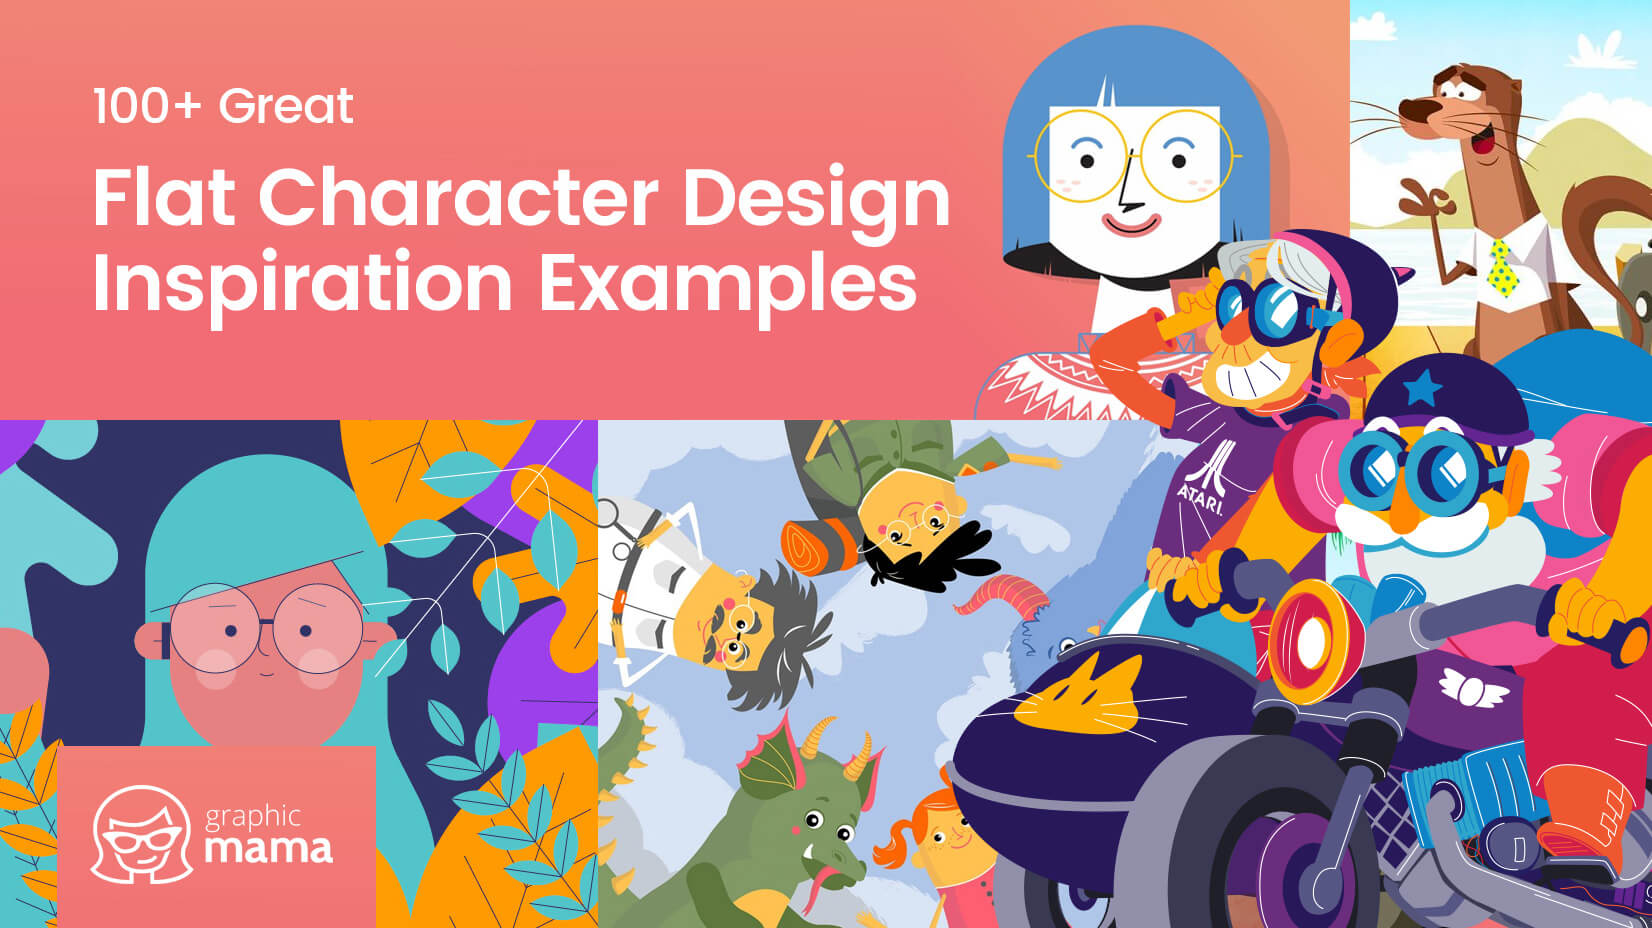 100+ Great Flat Character Design Inspiration Examples